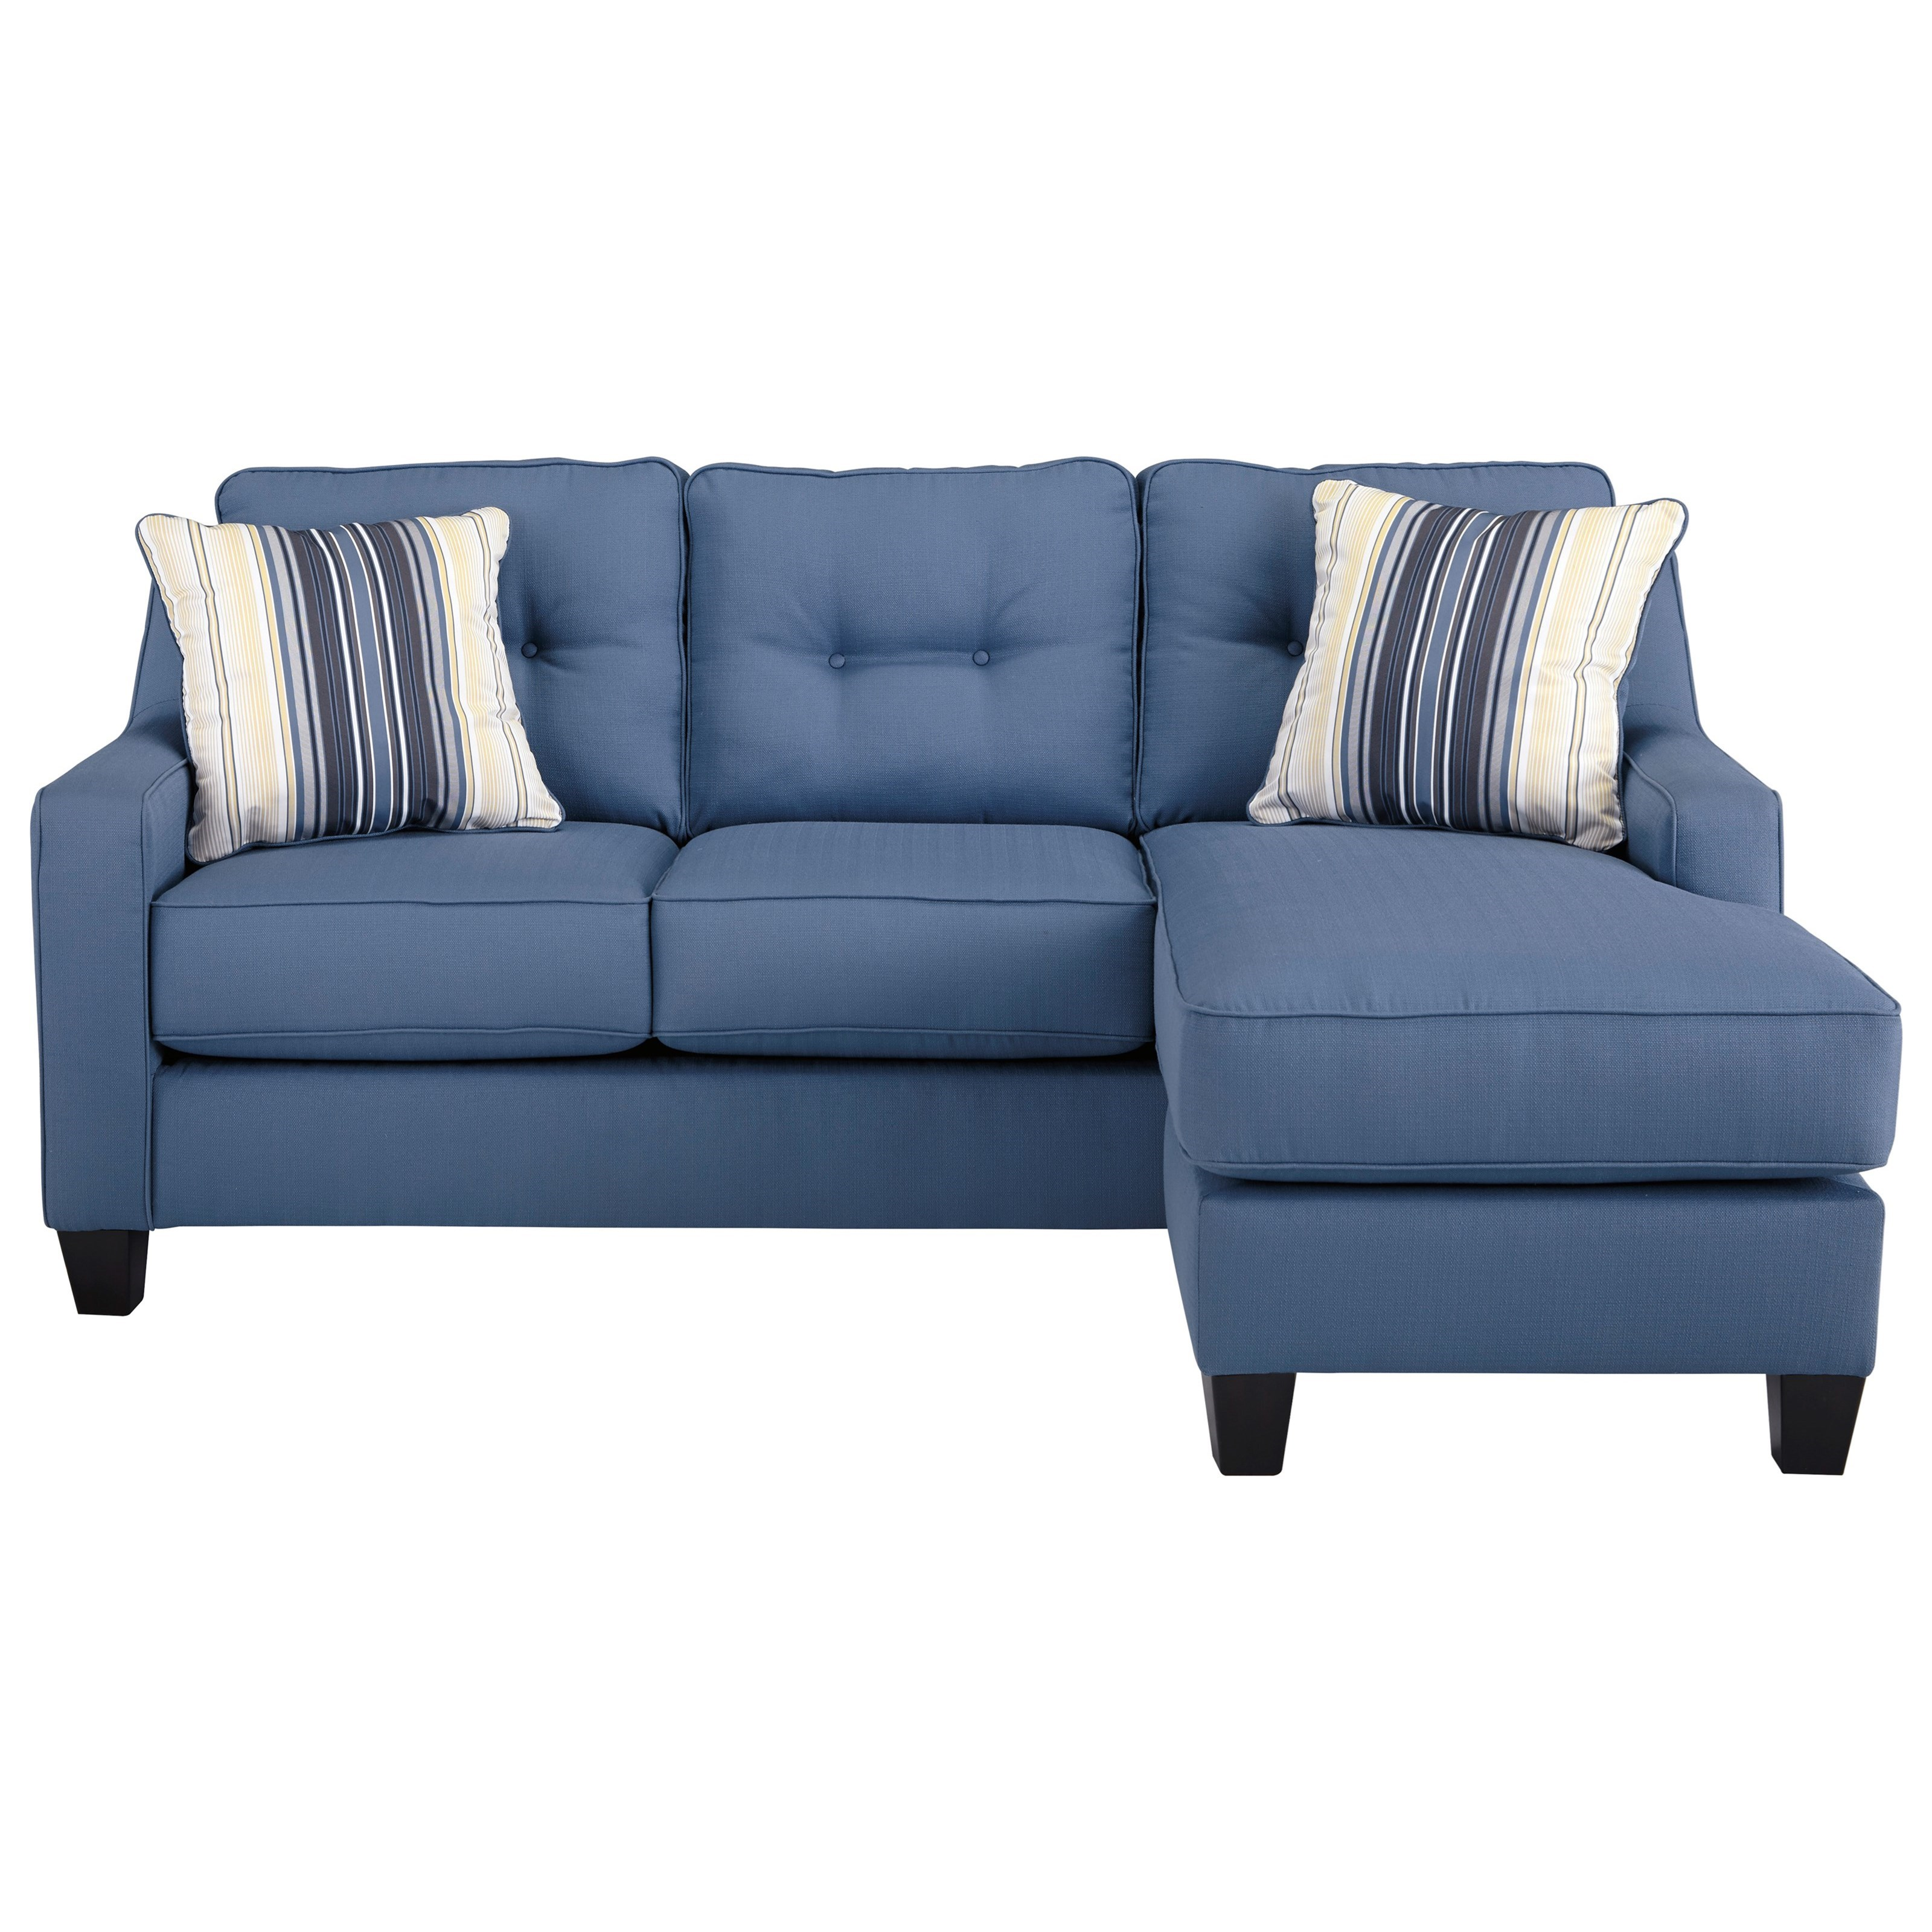 sleeper sofa chaise sectional interio madison benchcraft aldie nuvella queen in